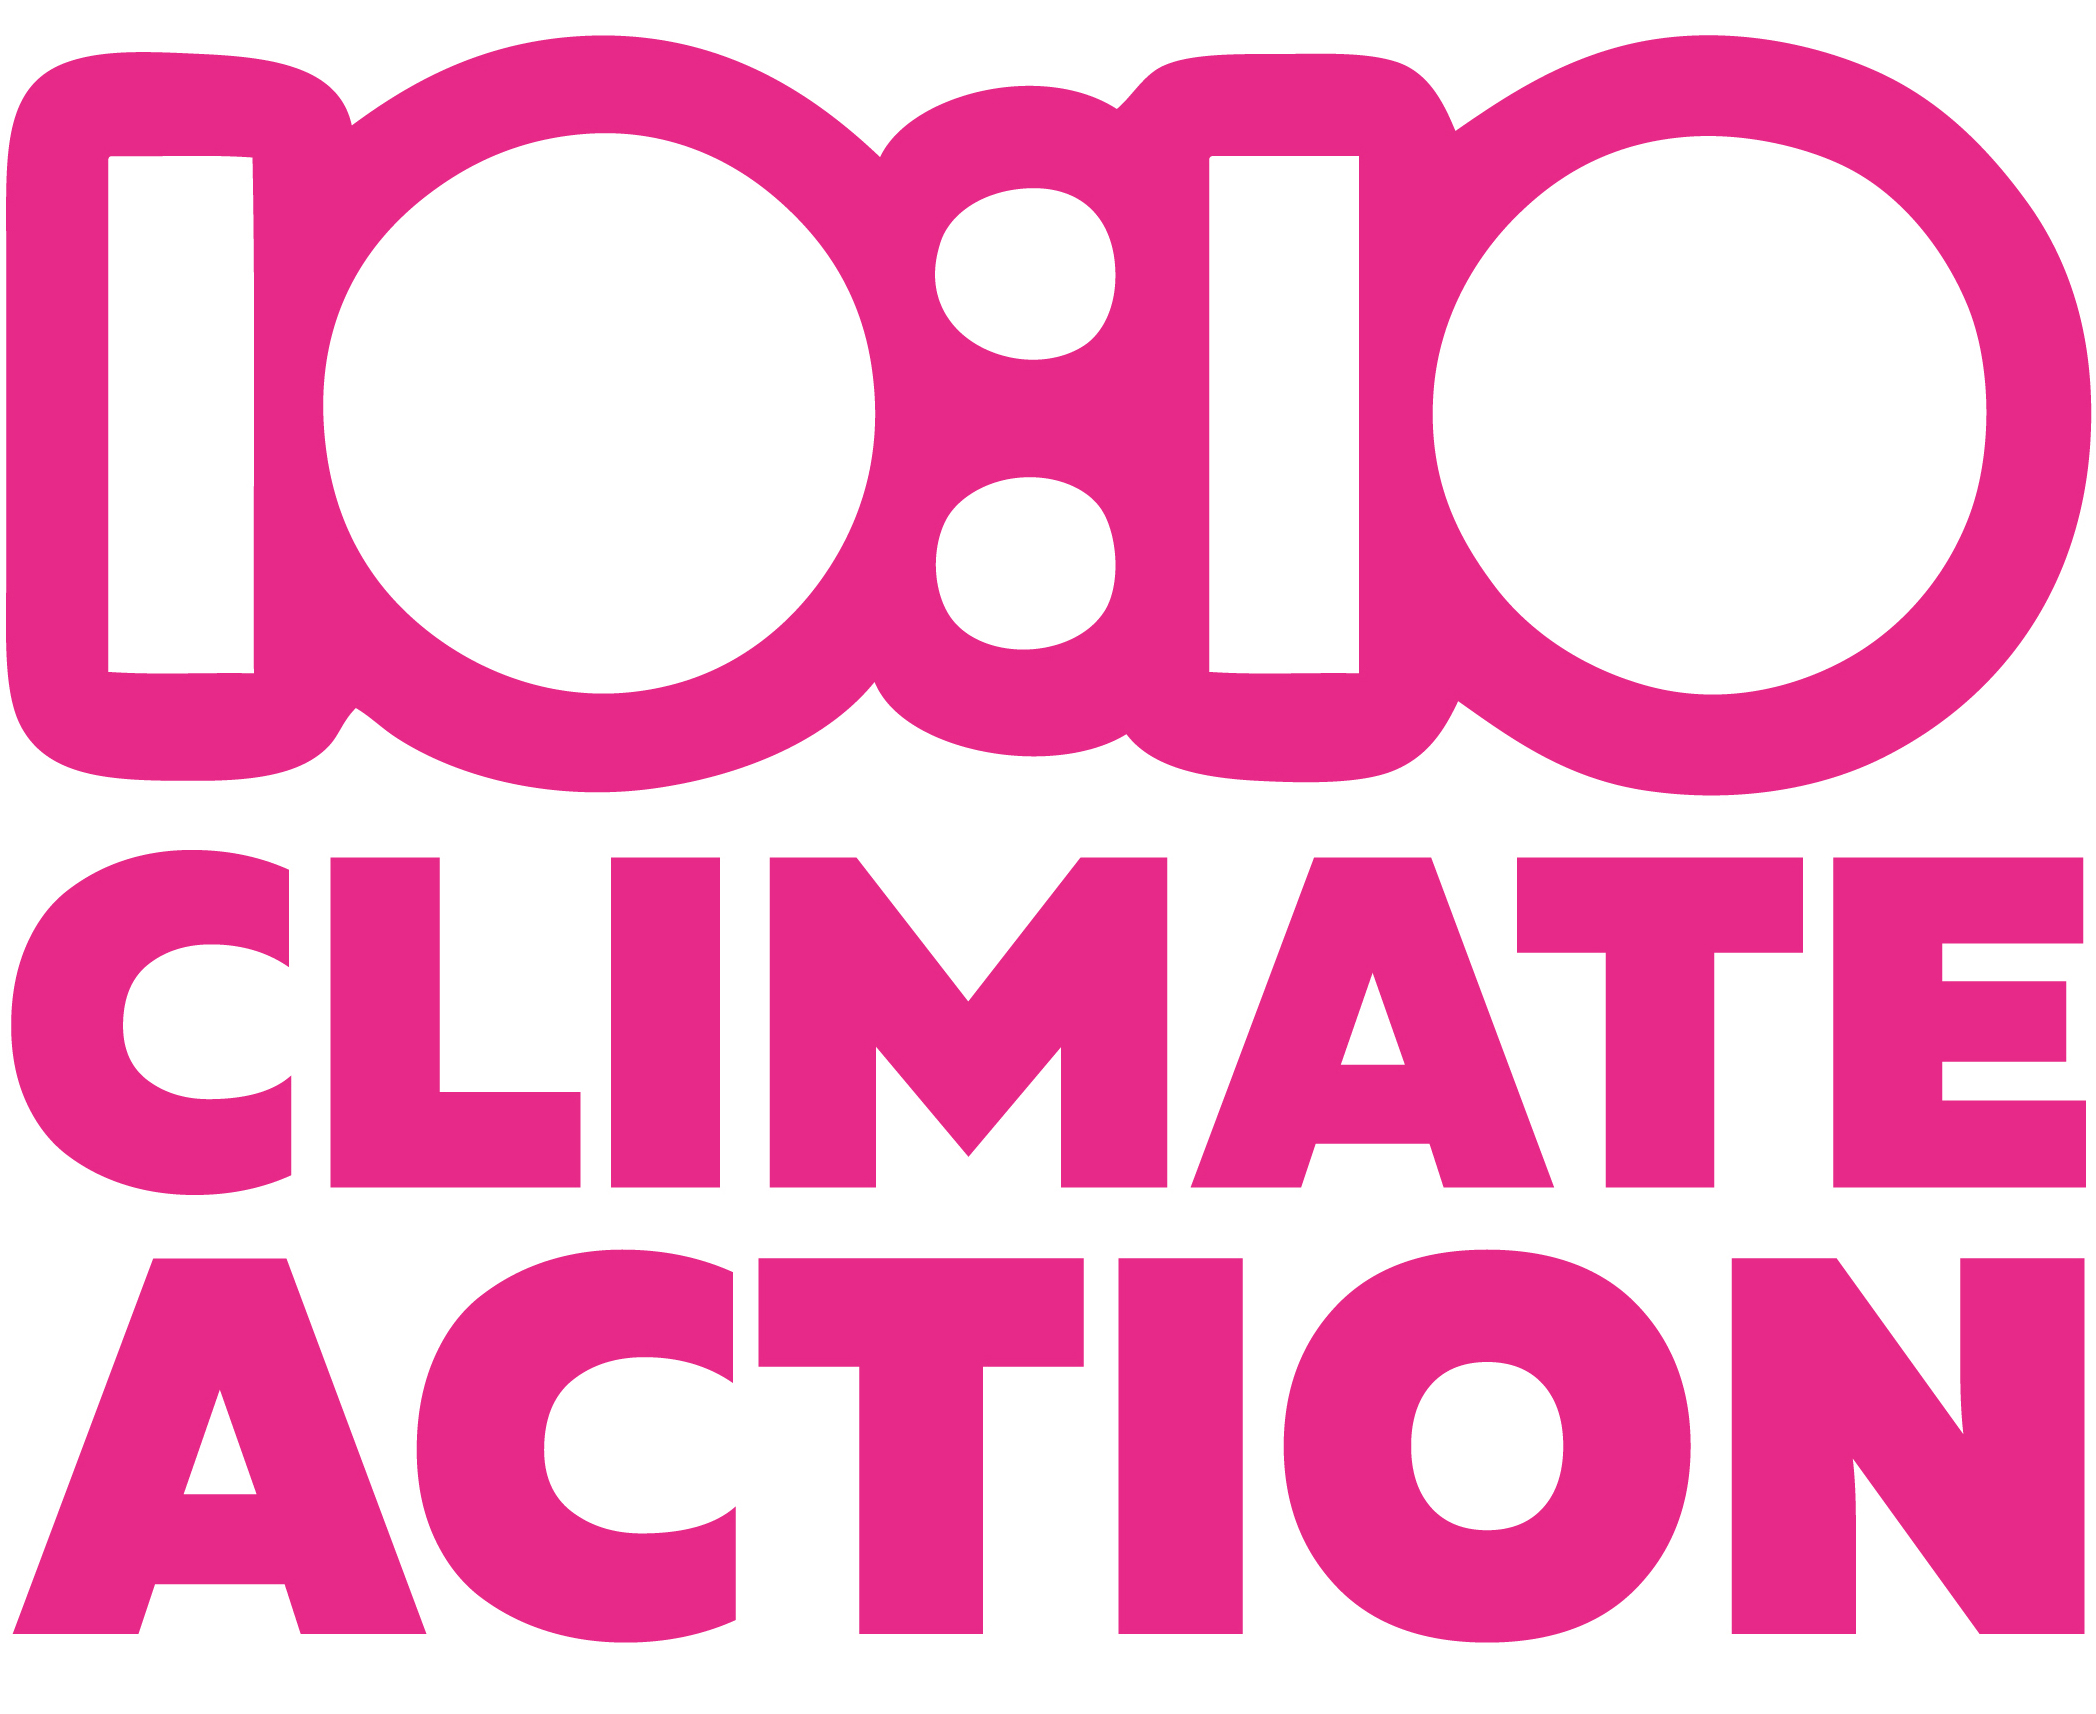 1010climateaction_logo2a.jpg